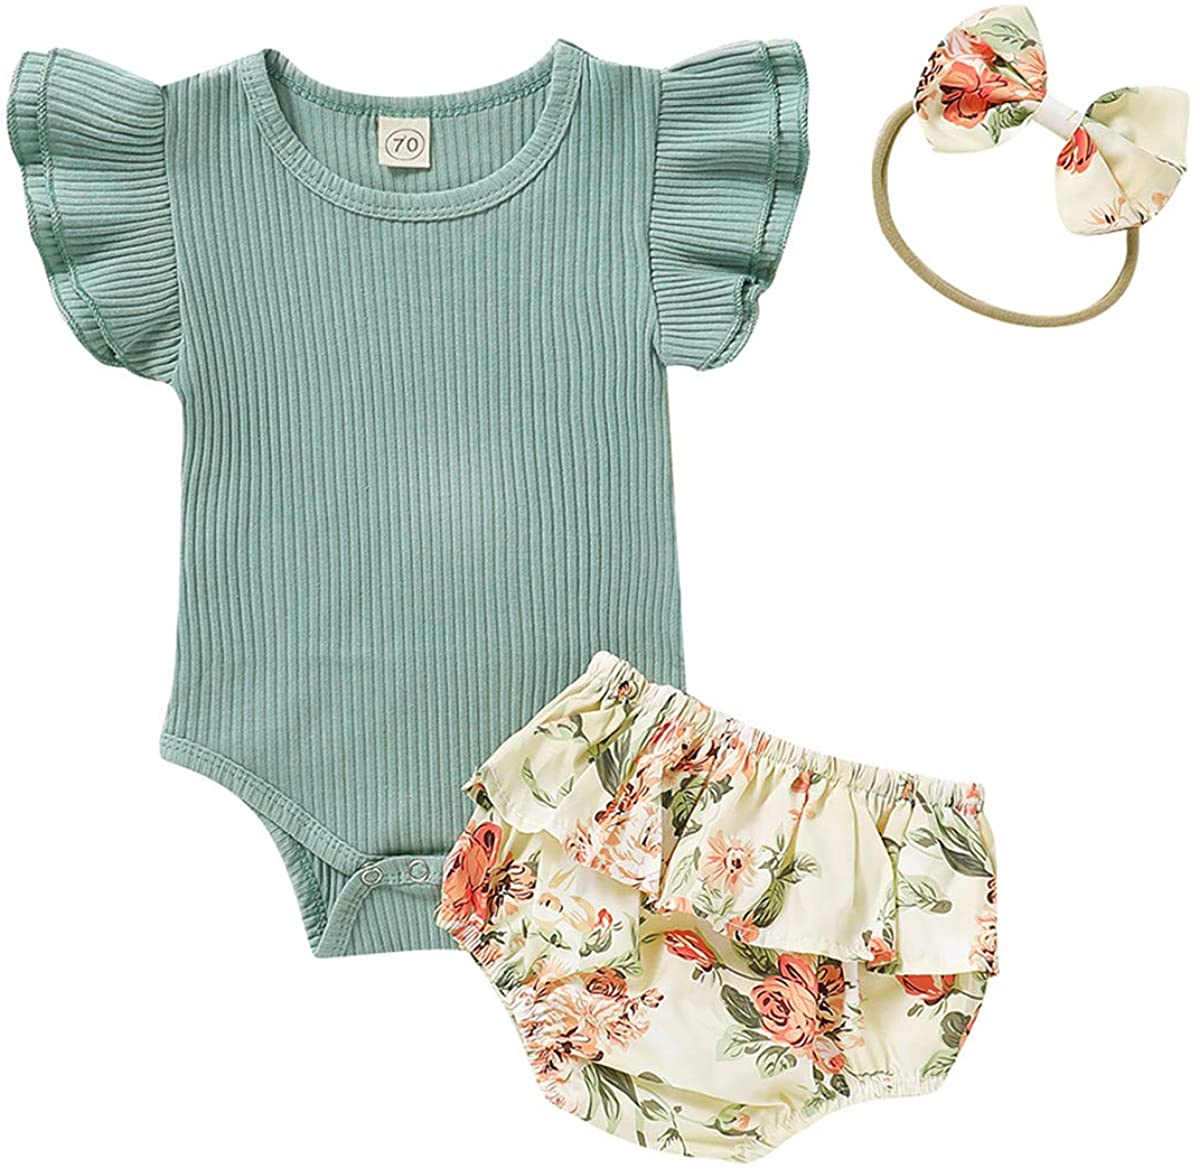 Newborn Baby Girl Ribbed Romper Jumpsuit Floral Shorts Headband Summer Outfit Clothes Set